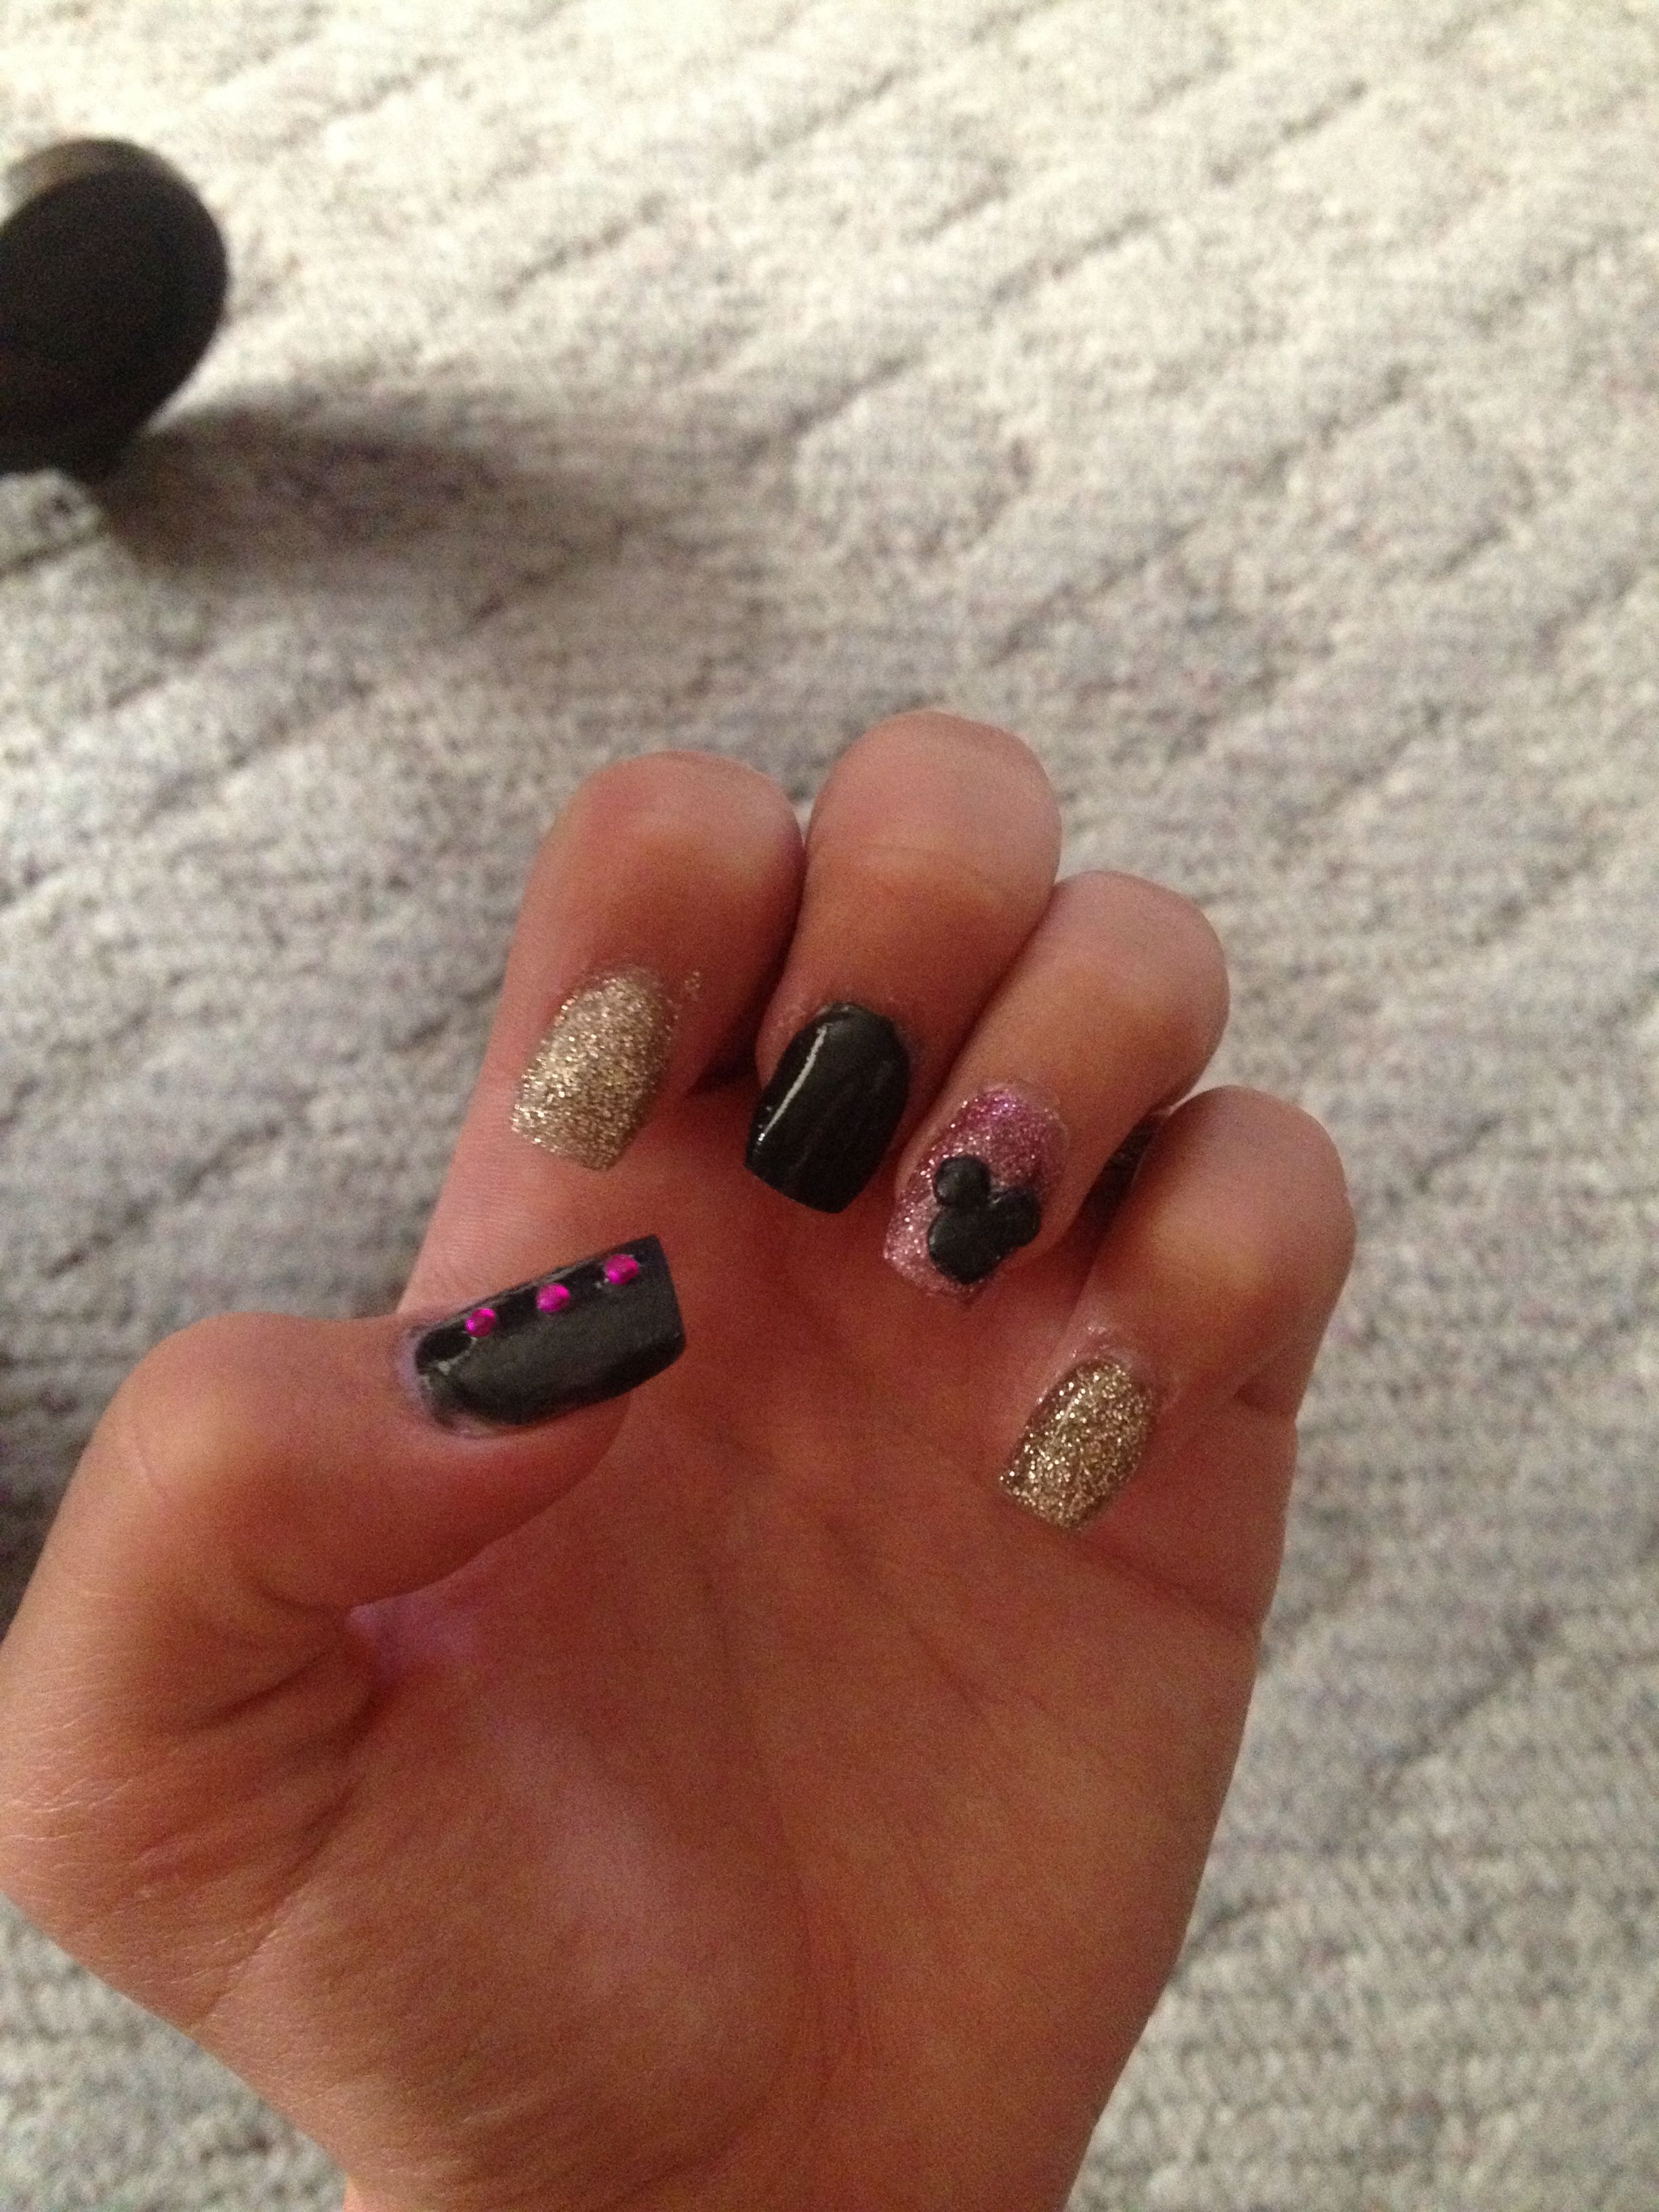 Disney acrylic nails Mickey Mouse pink gold and black | Nails ...